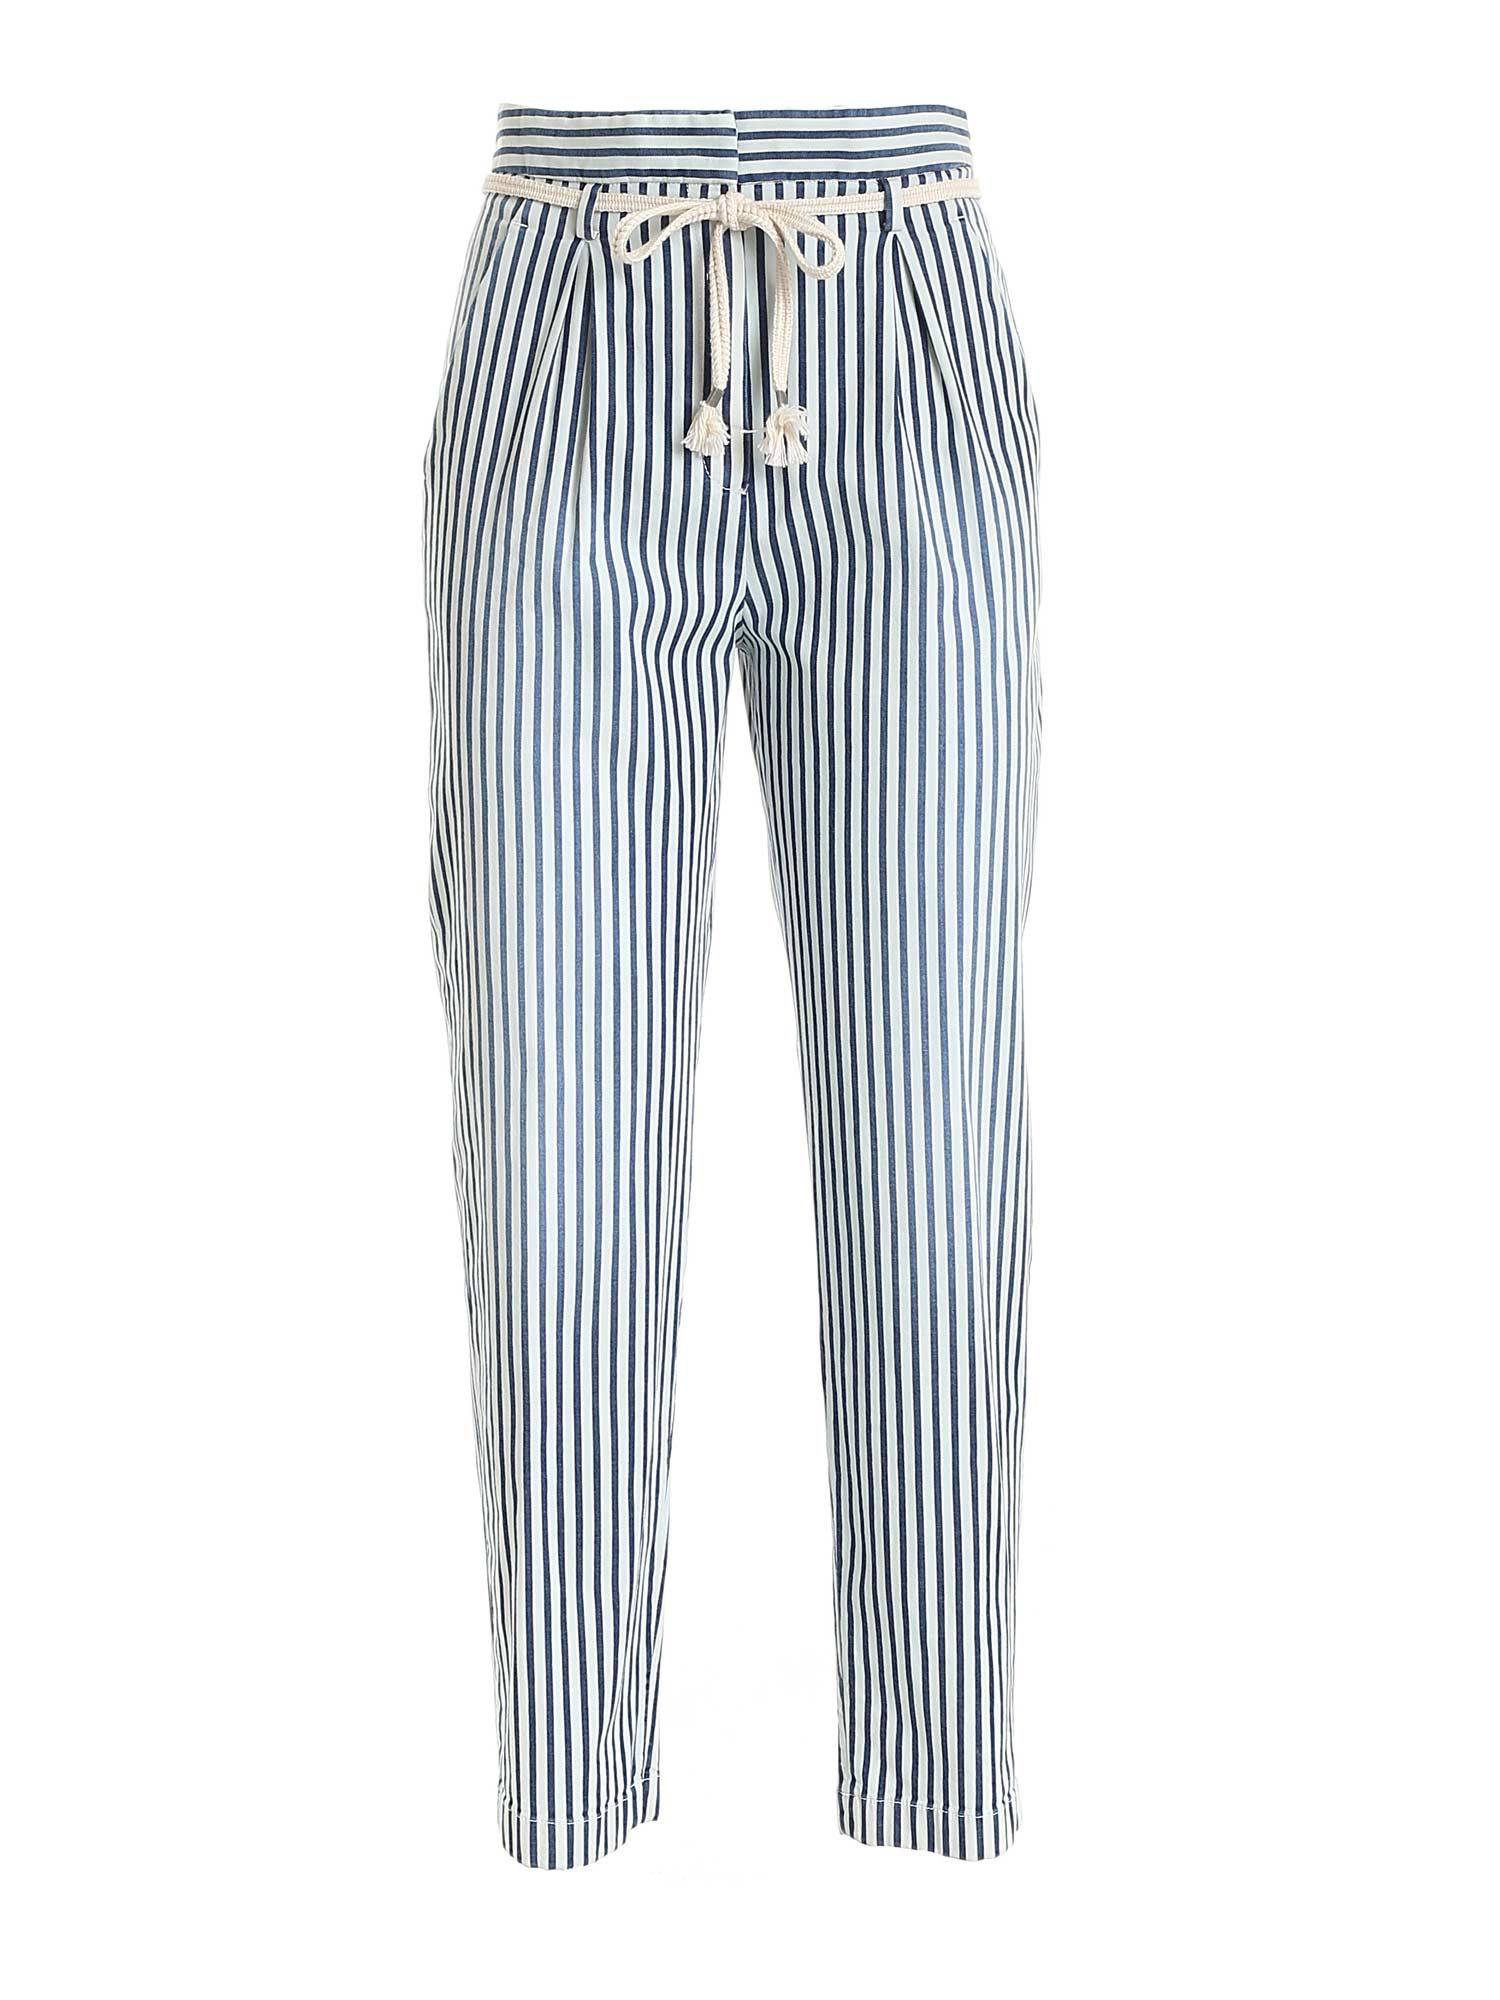 True Royal NICKY PANTS IN LIGHT BLUE AND BLUE